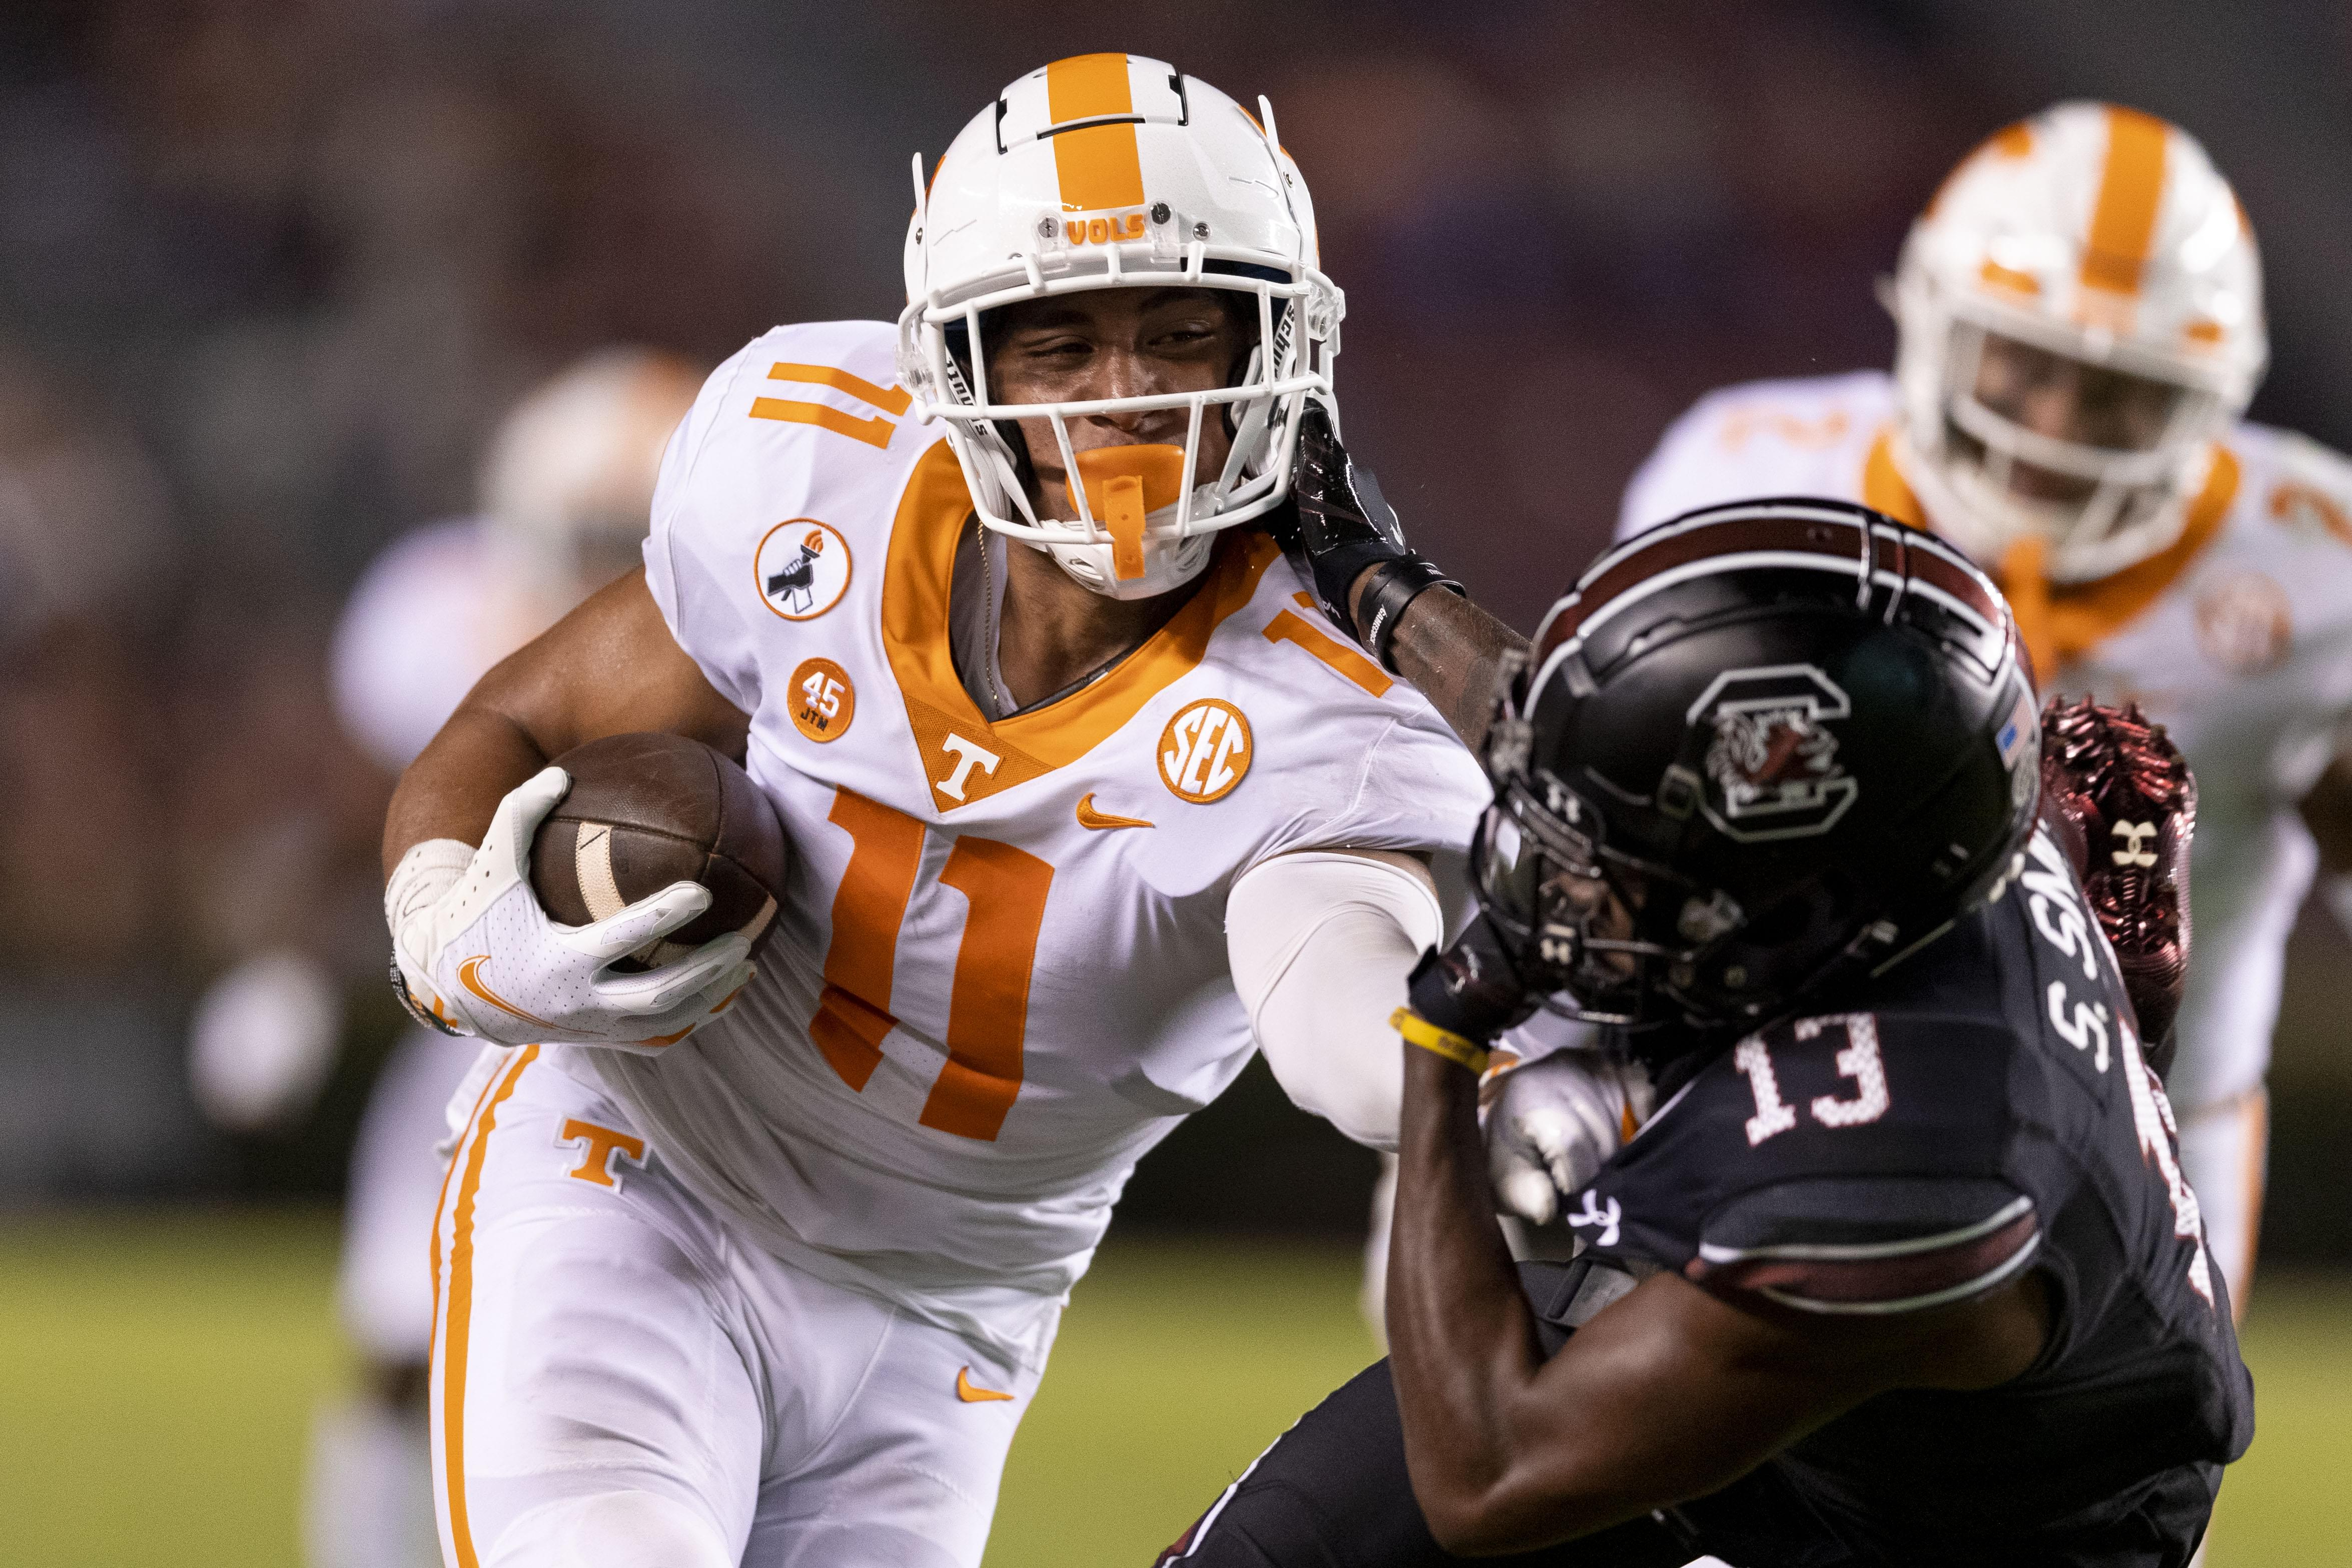 PHOTO GALLERY: Tennessee's 31-27 win over South Carolina